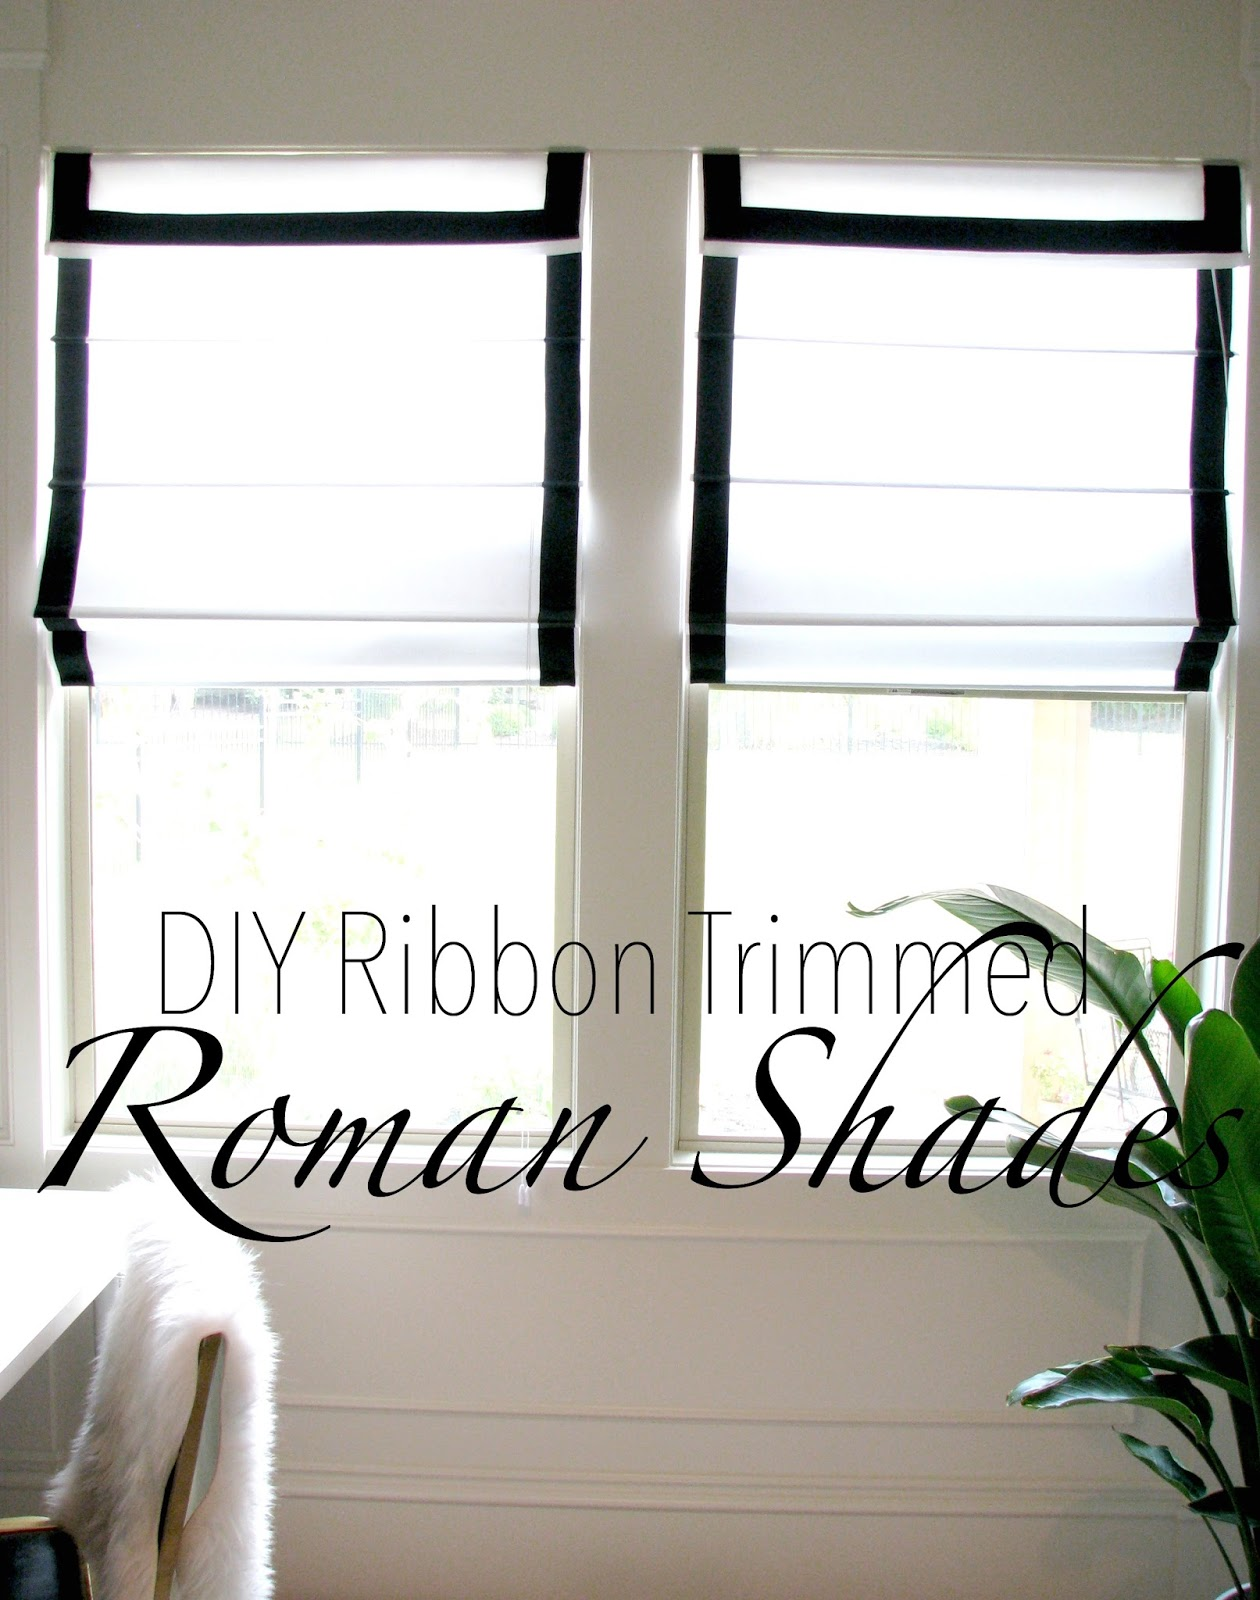 Diy Roman Shades Easy Life Love Larson Look For Less Challenge Diy Ribbon Trimmed